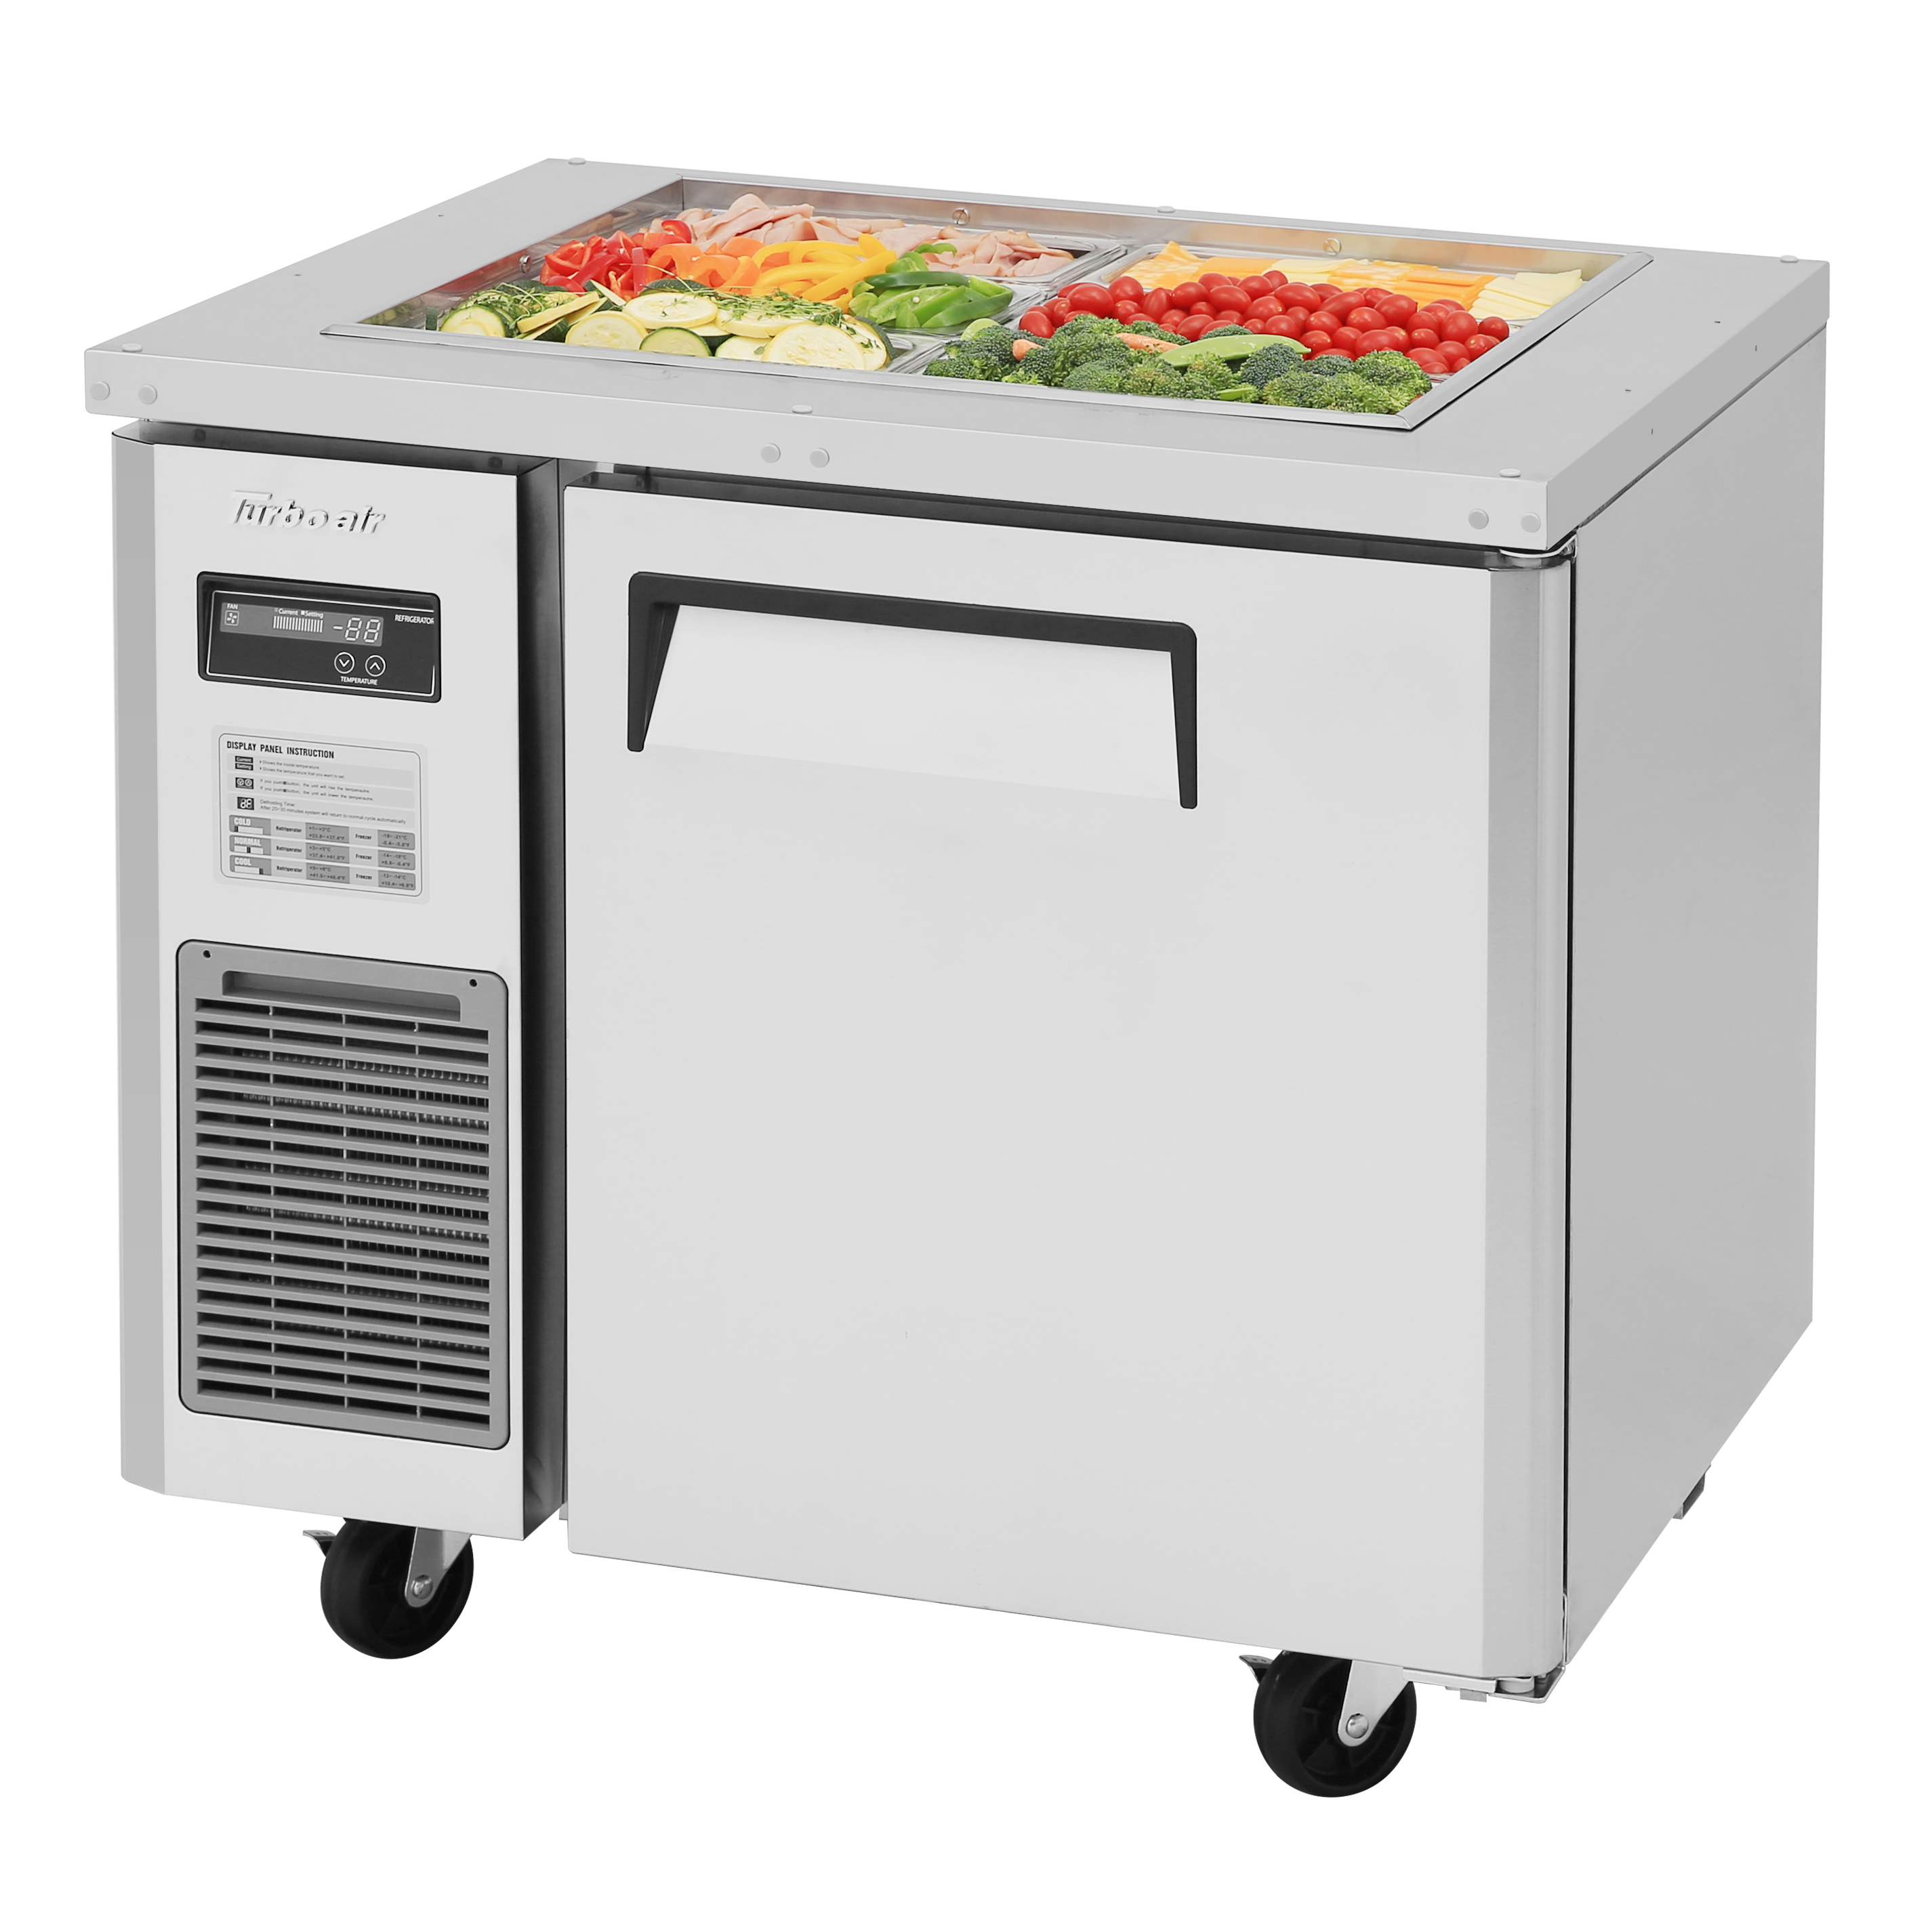 Turbo Air JBT-36-N refrigerated counter, sandwich / salad unit